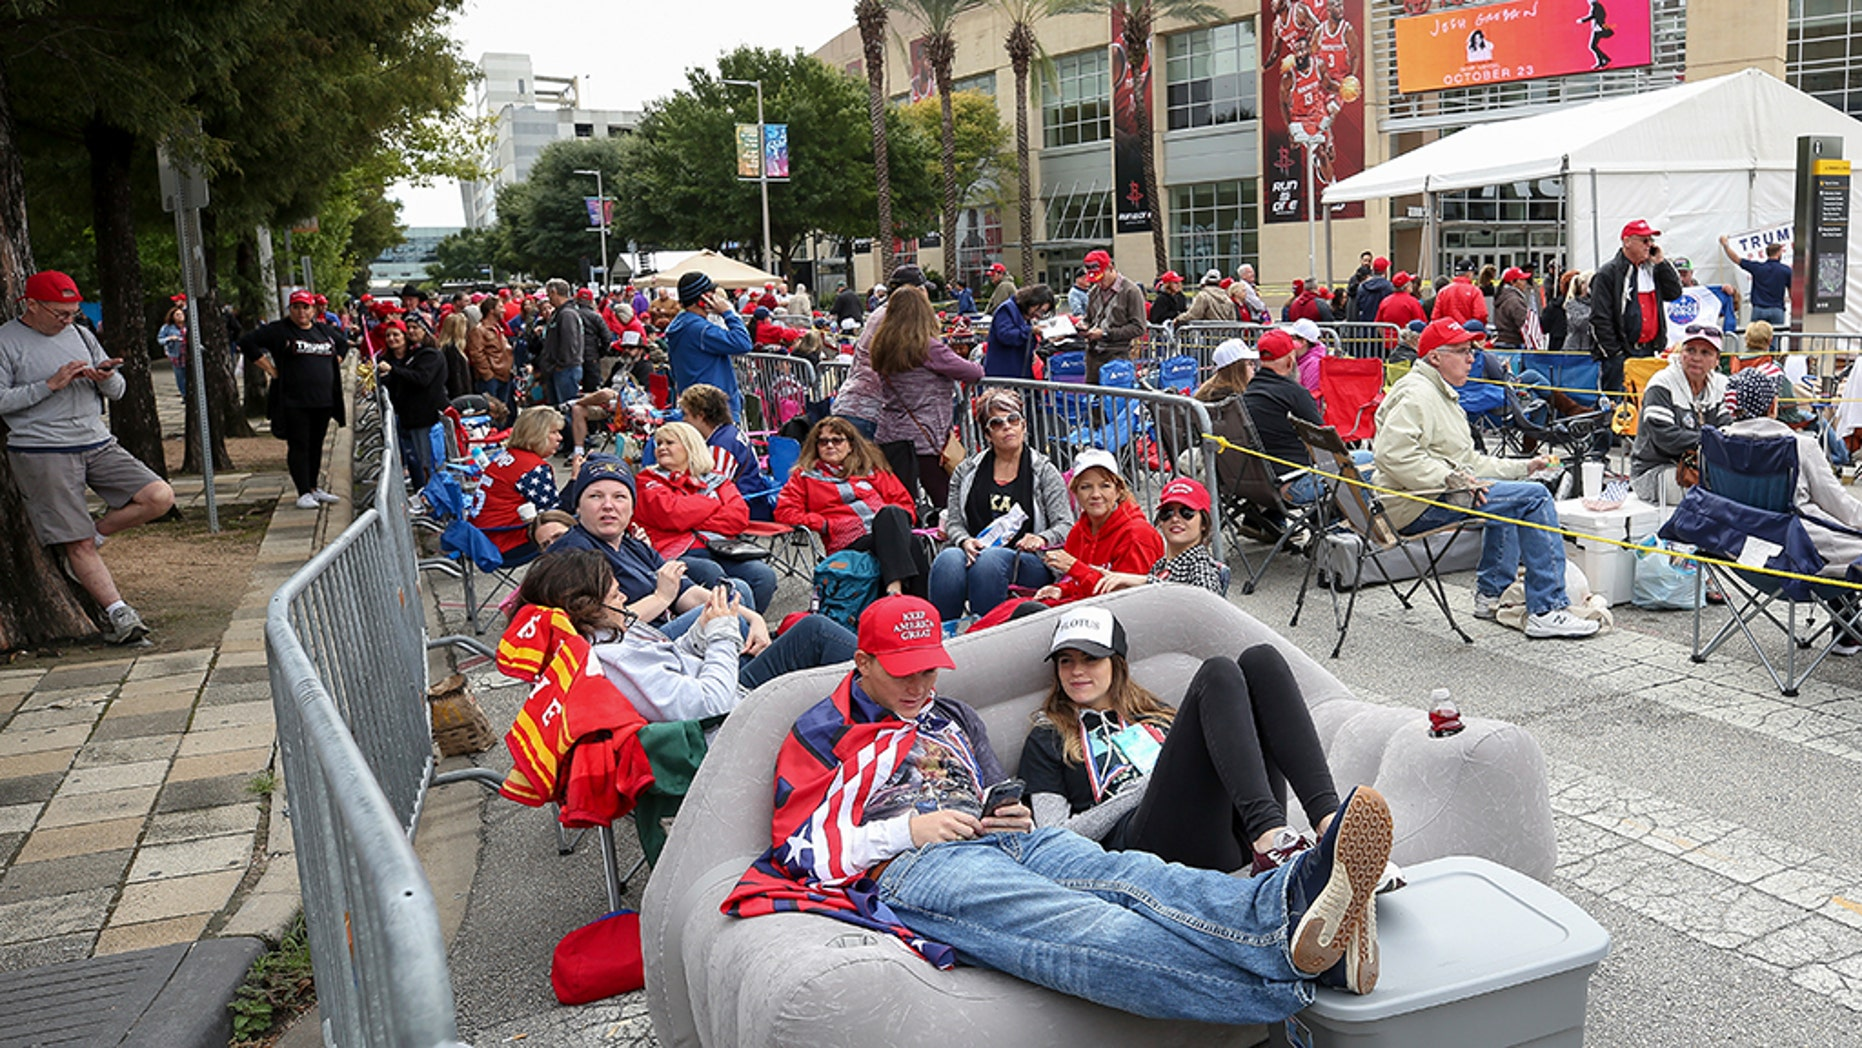 Kersten Buck, 25, and her fiance Clayton Dupree, 25, sit on an inflatable couch as they wait for a President Trump rally for Sen. Ted Cruz at the Toyota Center on Monday in Houston. (Godofredo A. Vasquez/Houston Chronicle via AP)